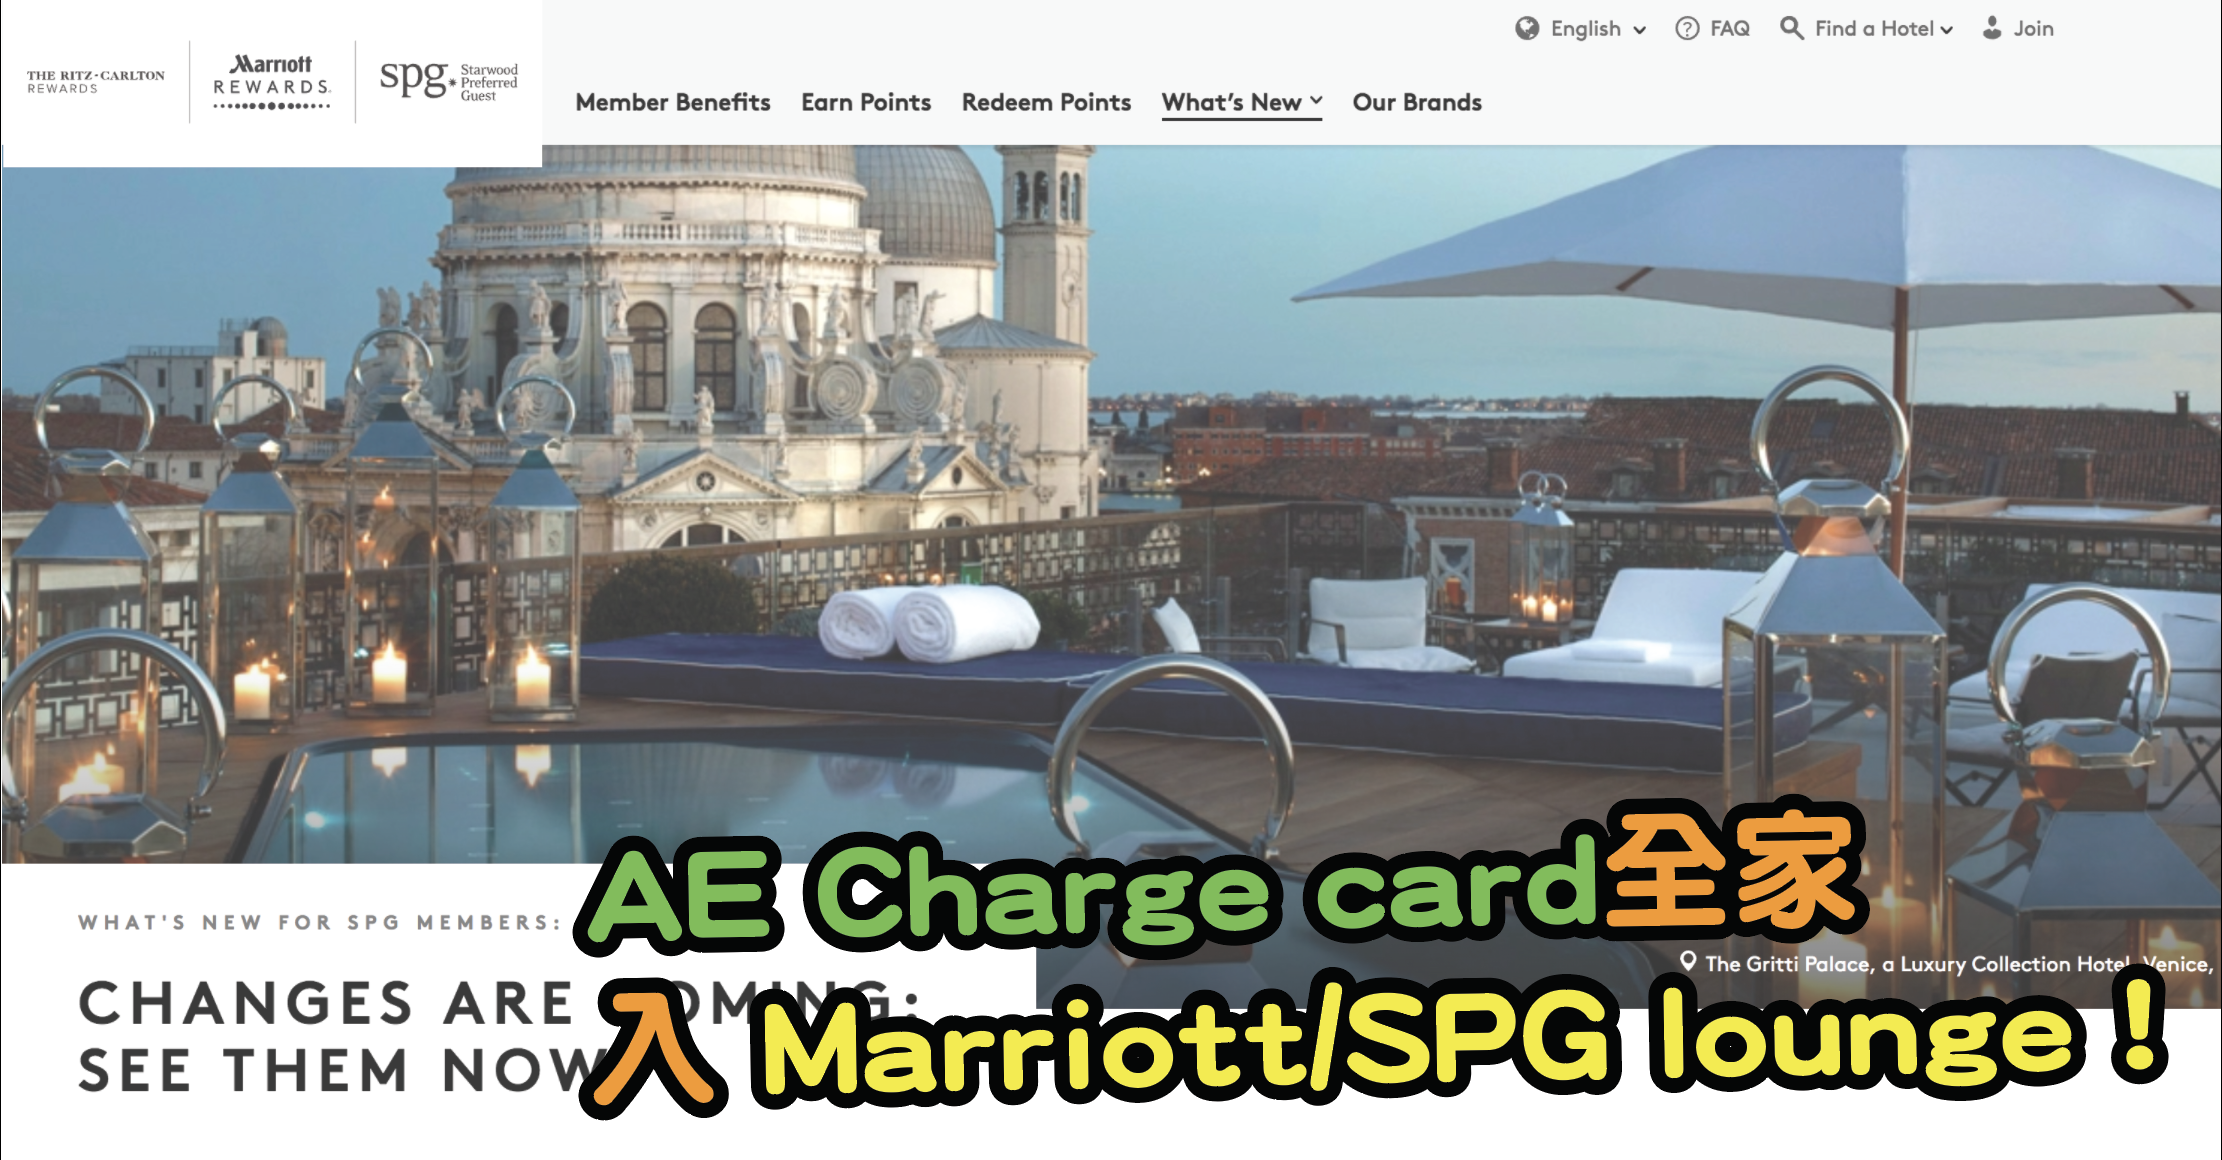 好消息!Marriott / SPG 合併後Marriott gold 將升做Platinum!住Marriott/SPG有早餐有lounge用!AE Charge 卡持卡人都有!附屬卡都有!